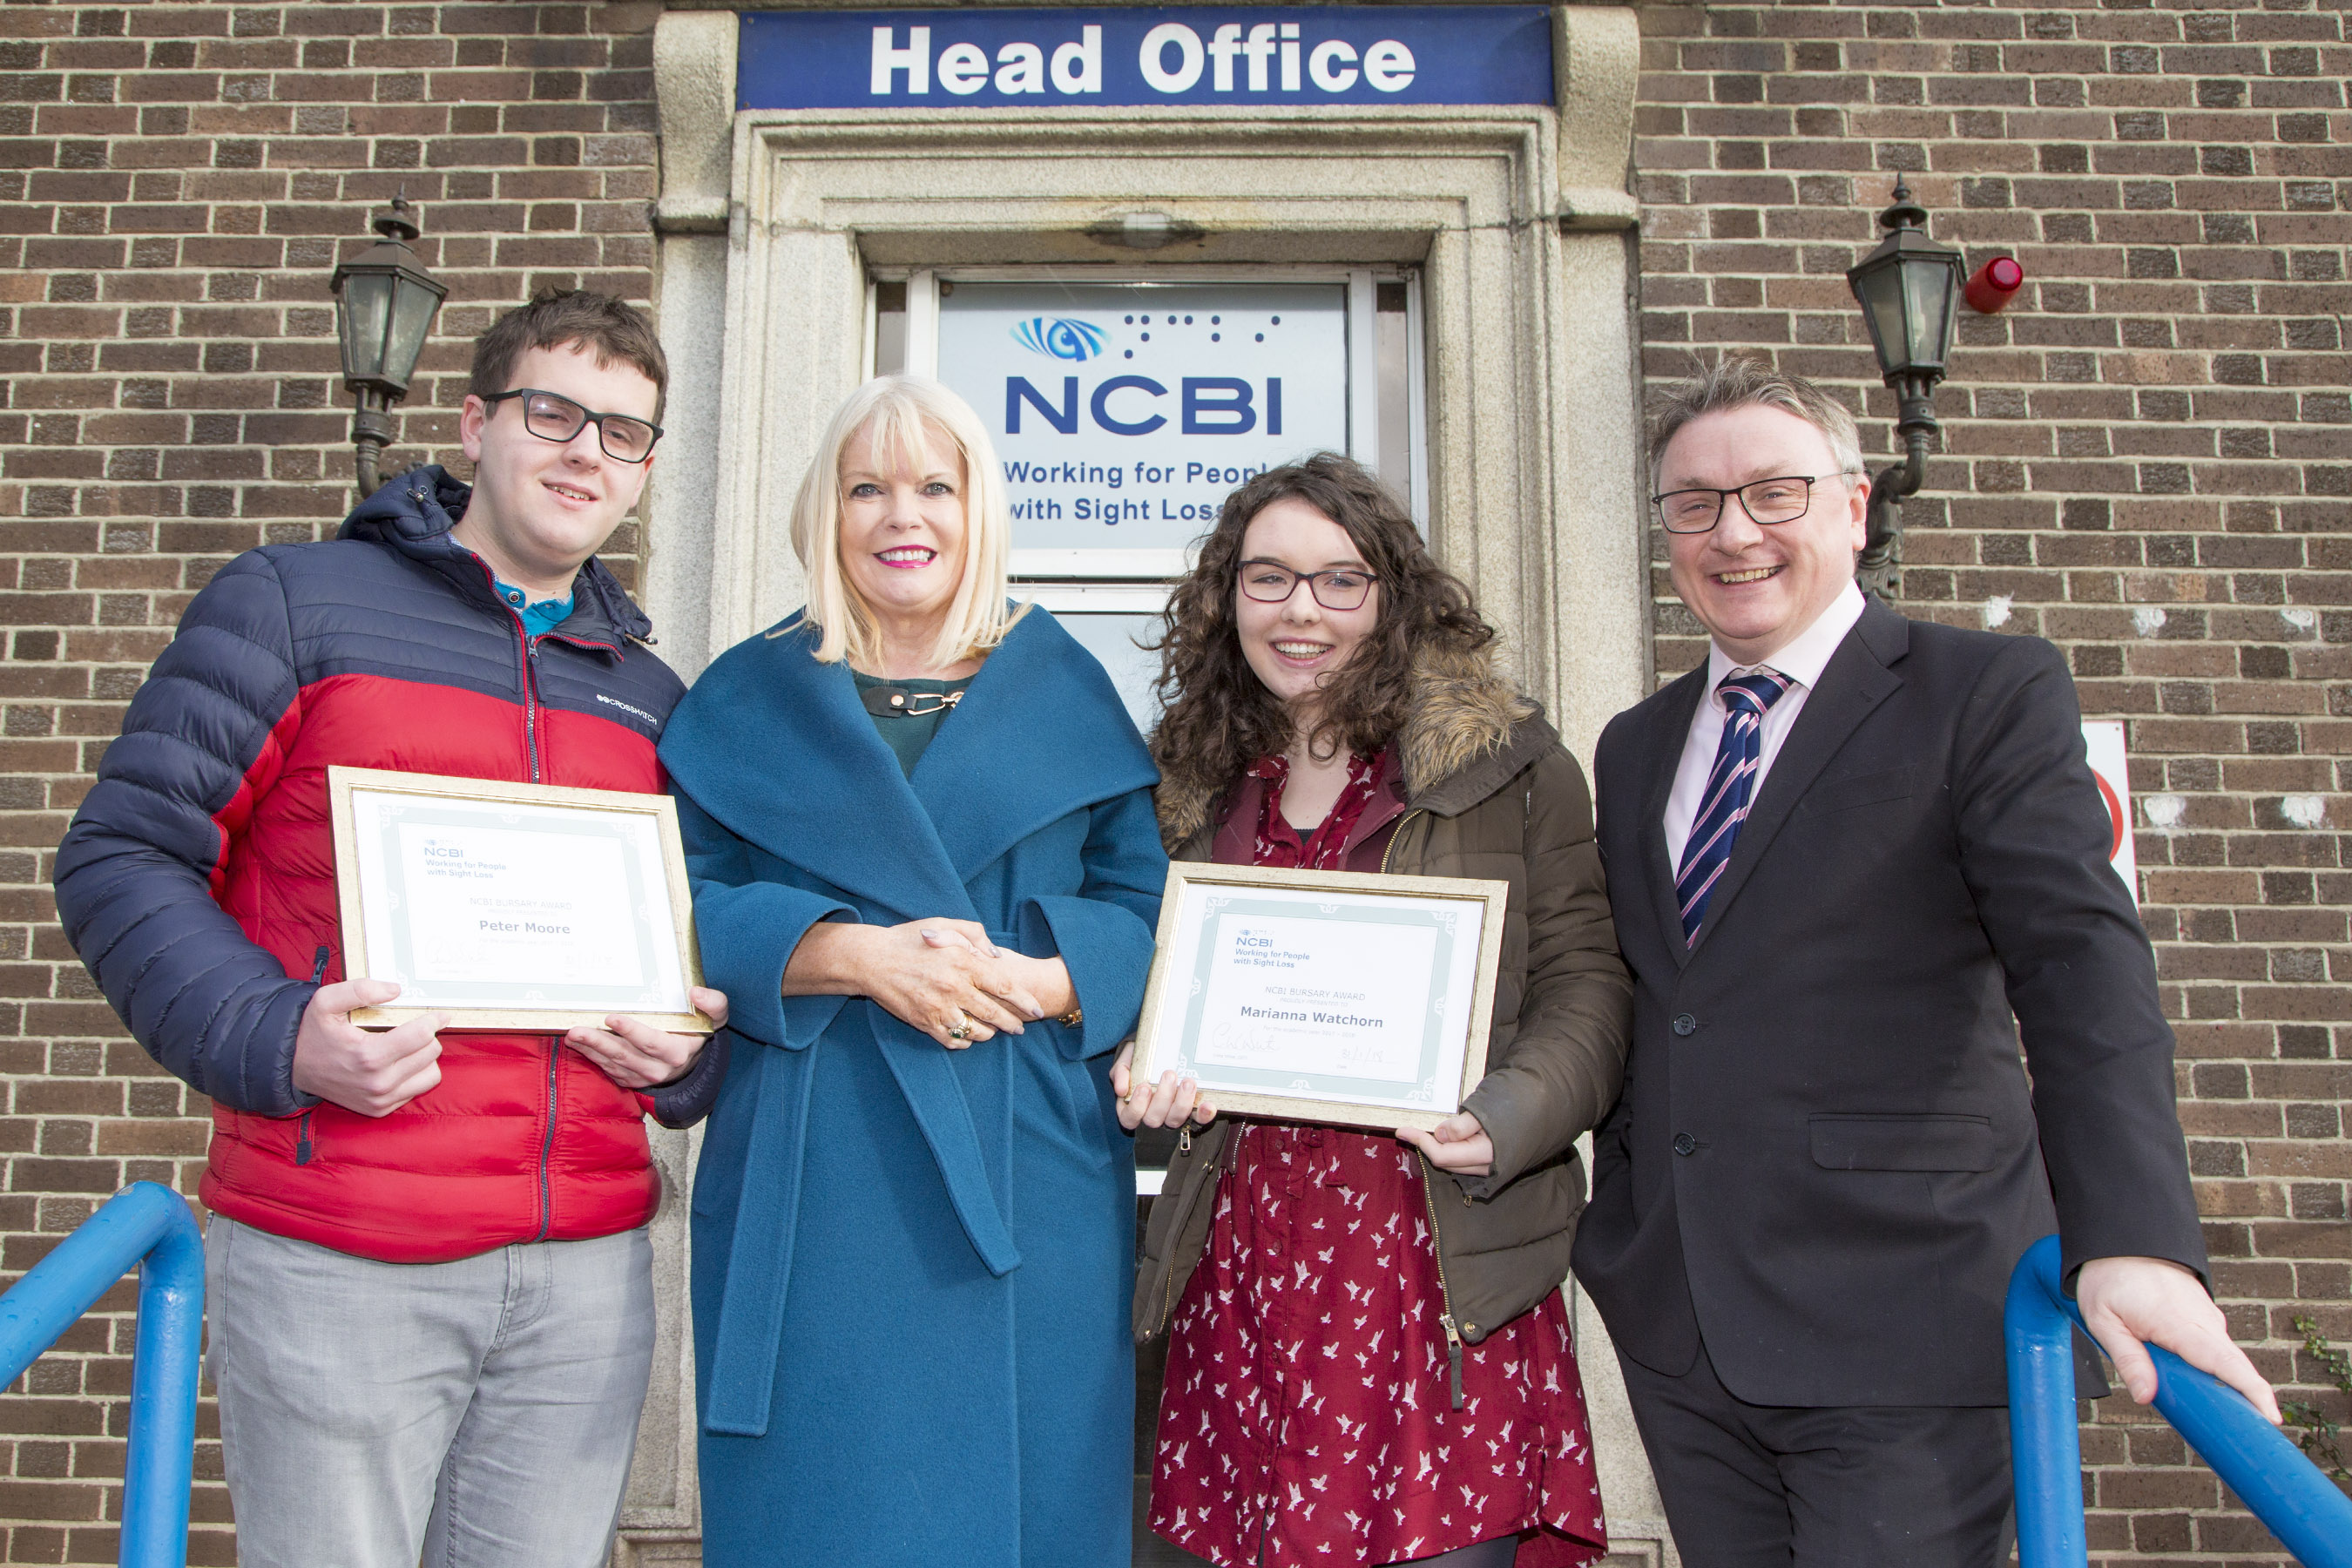 Minister Mary Mitchell O' Connor pictured with Chris White NCBI CEO and 2017 Bursary recipients Peter Moore and Marianna Watchhorn